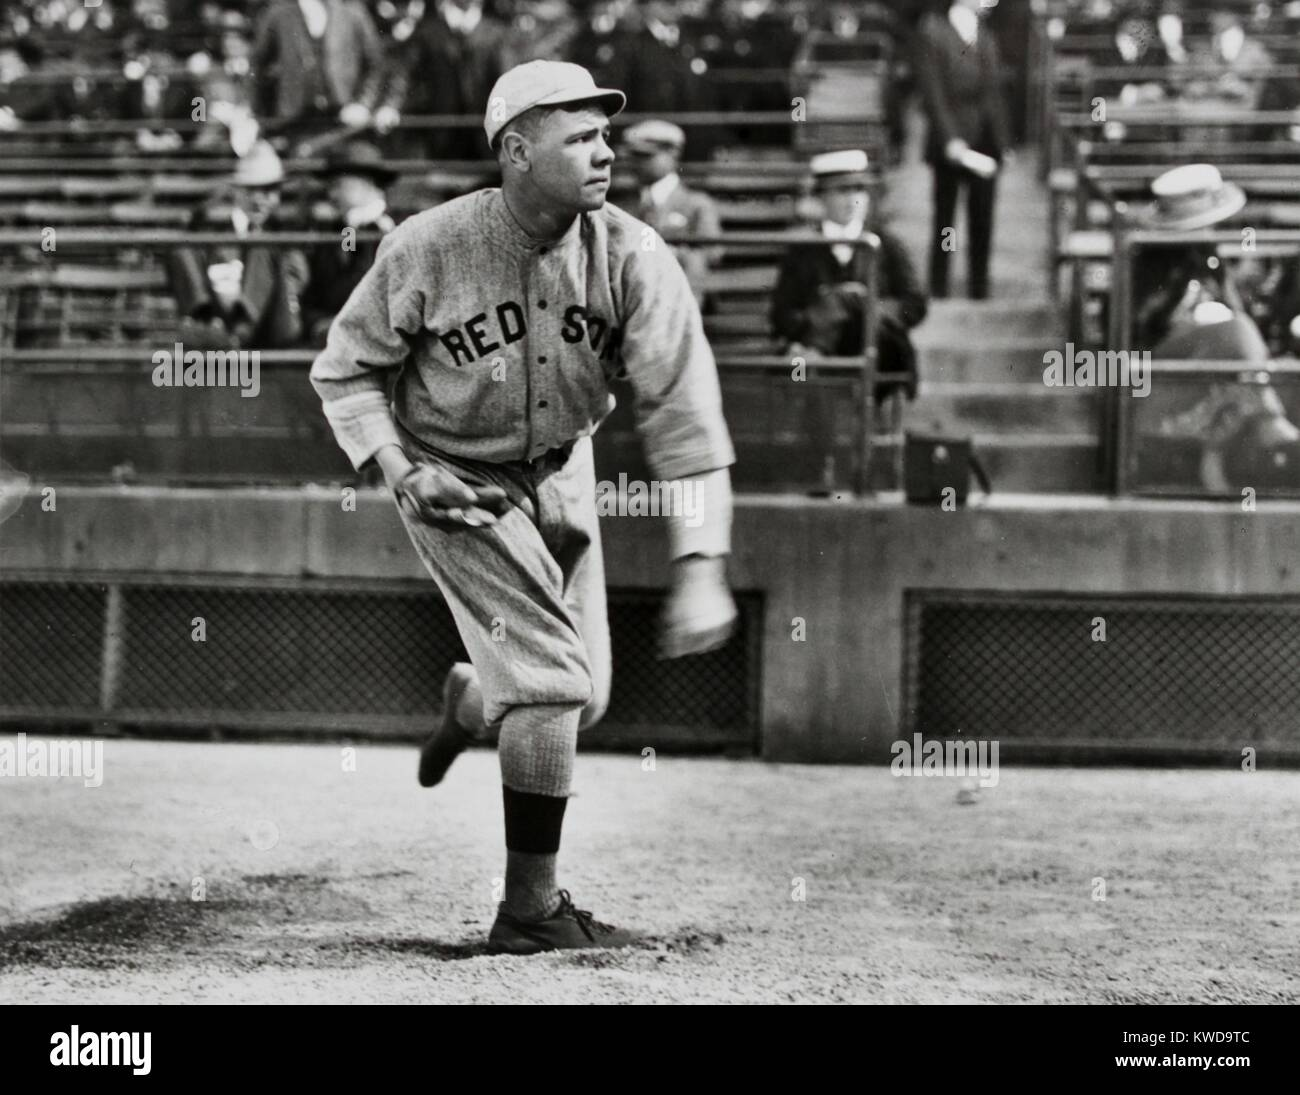 Babe Ruth as a left-handed pitcher for the Boston Red Sox. Ca. 1914-19. (BSLOC_2015_17_21) - Stock Image